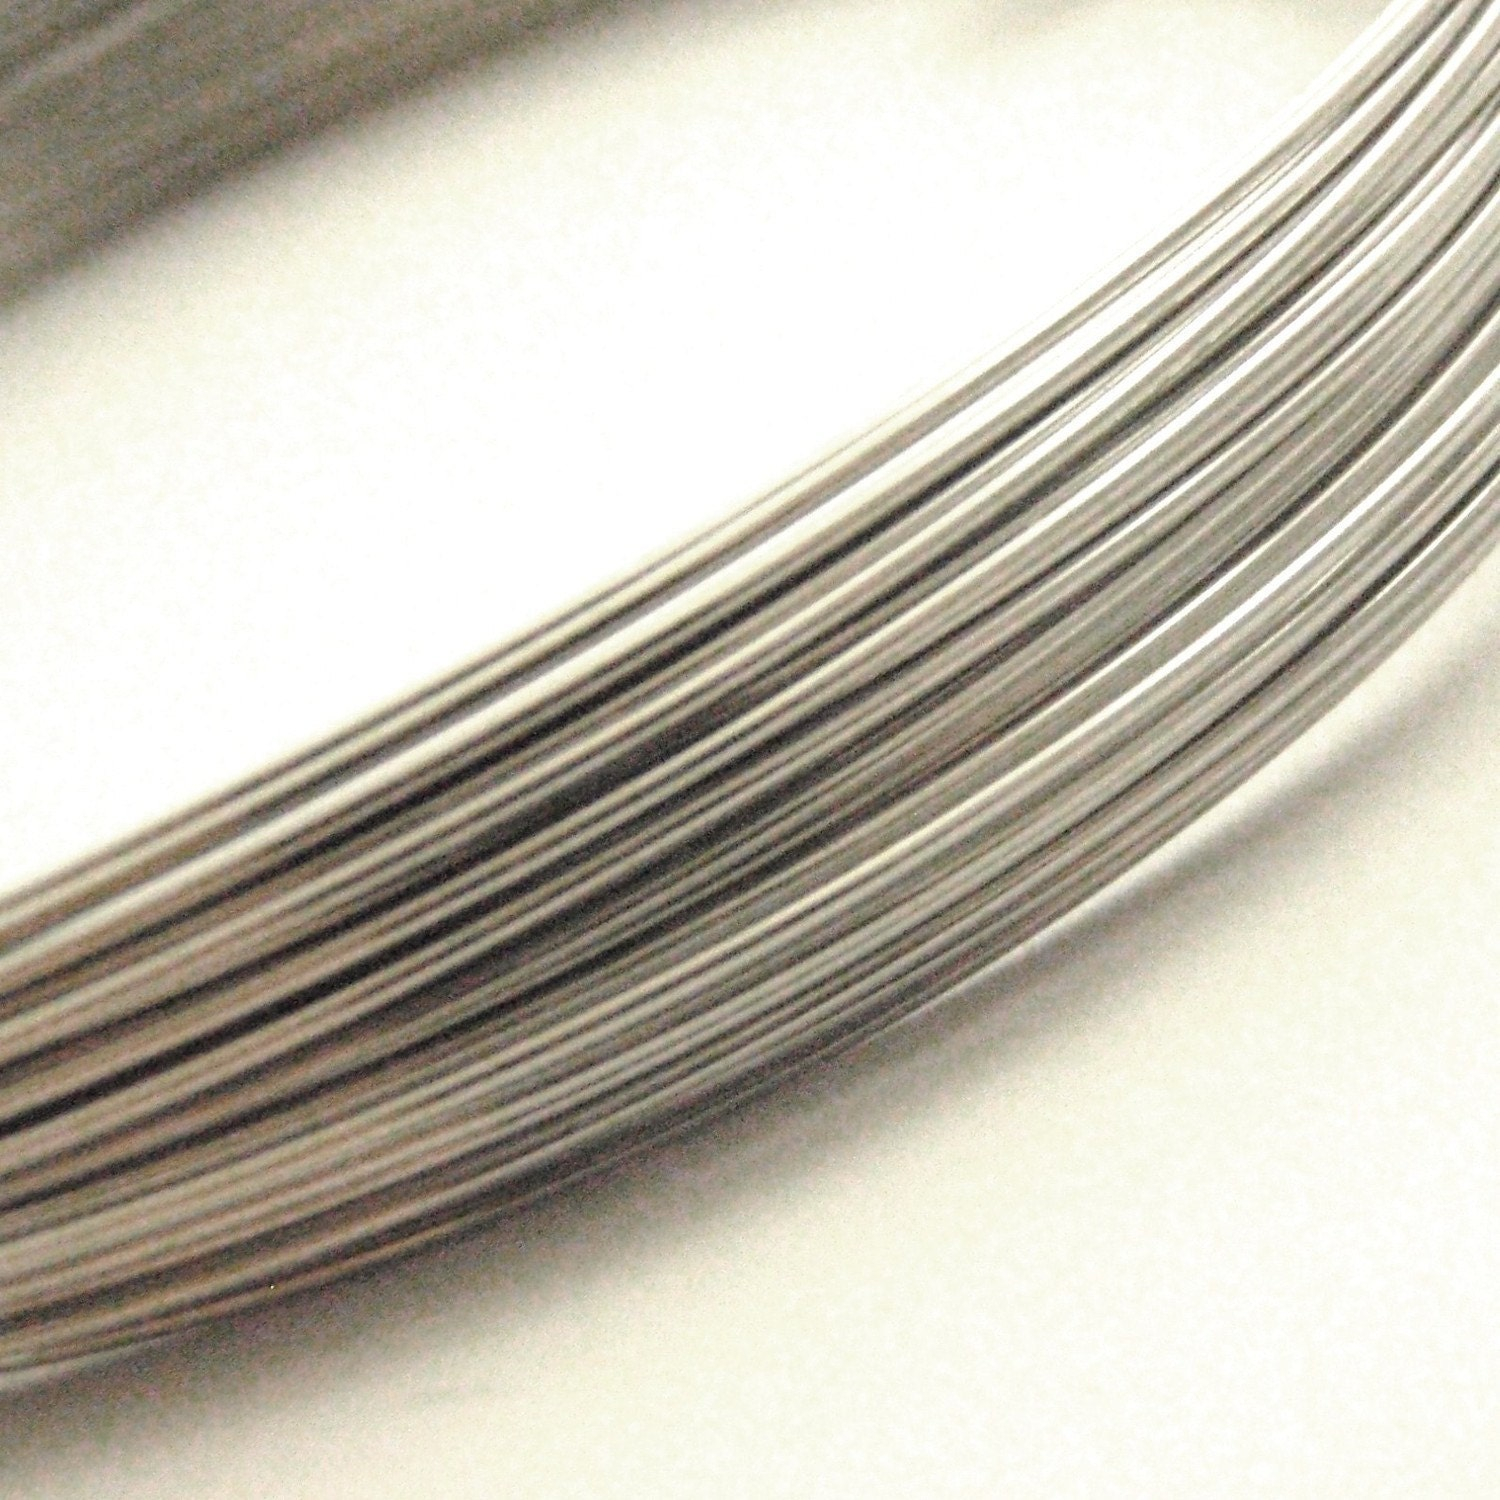 Stainless Steel Wire : Stainless steel wire nickel free you pick gauge